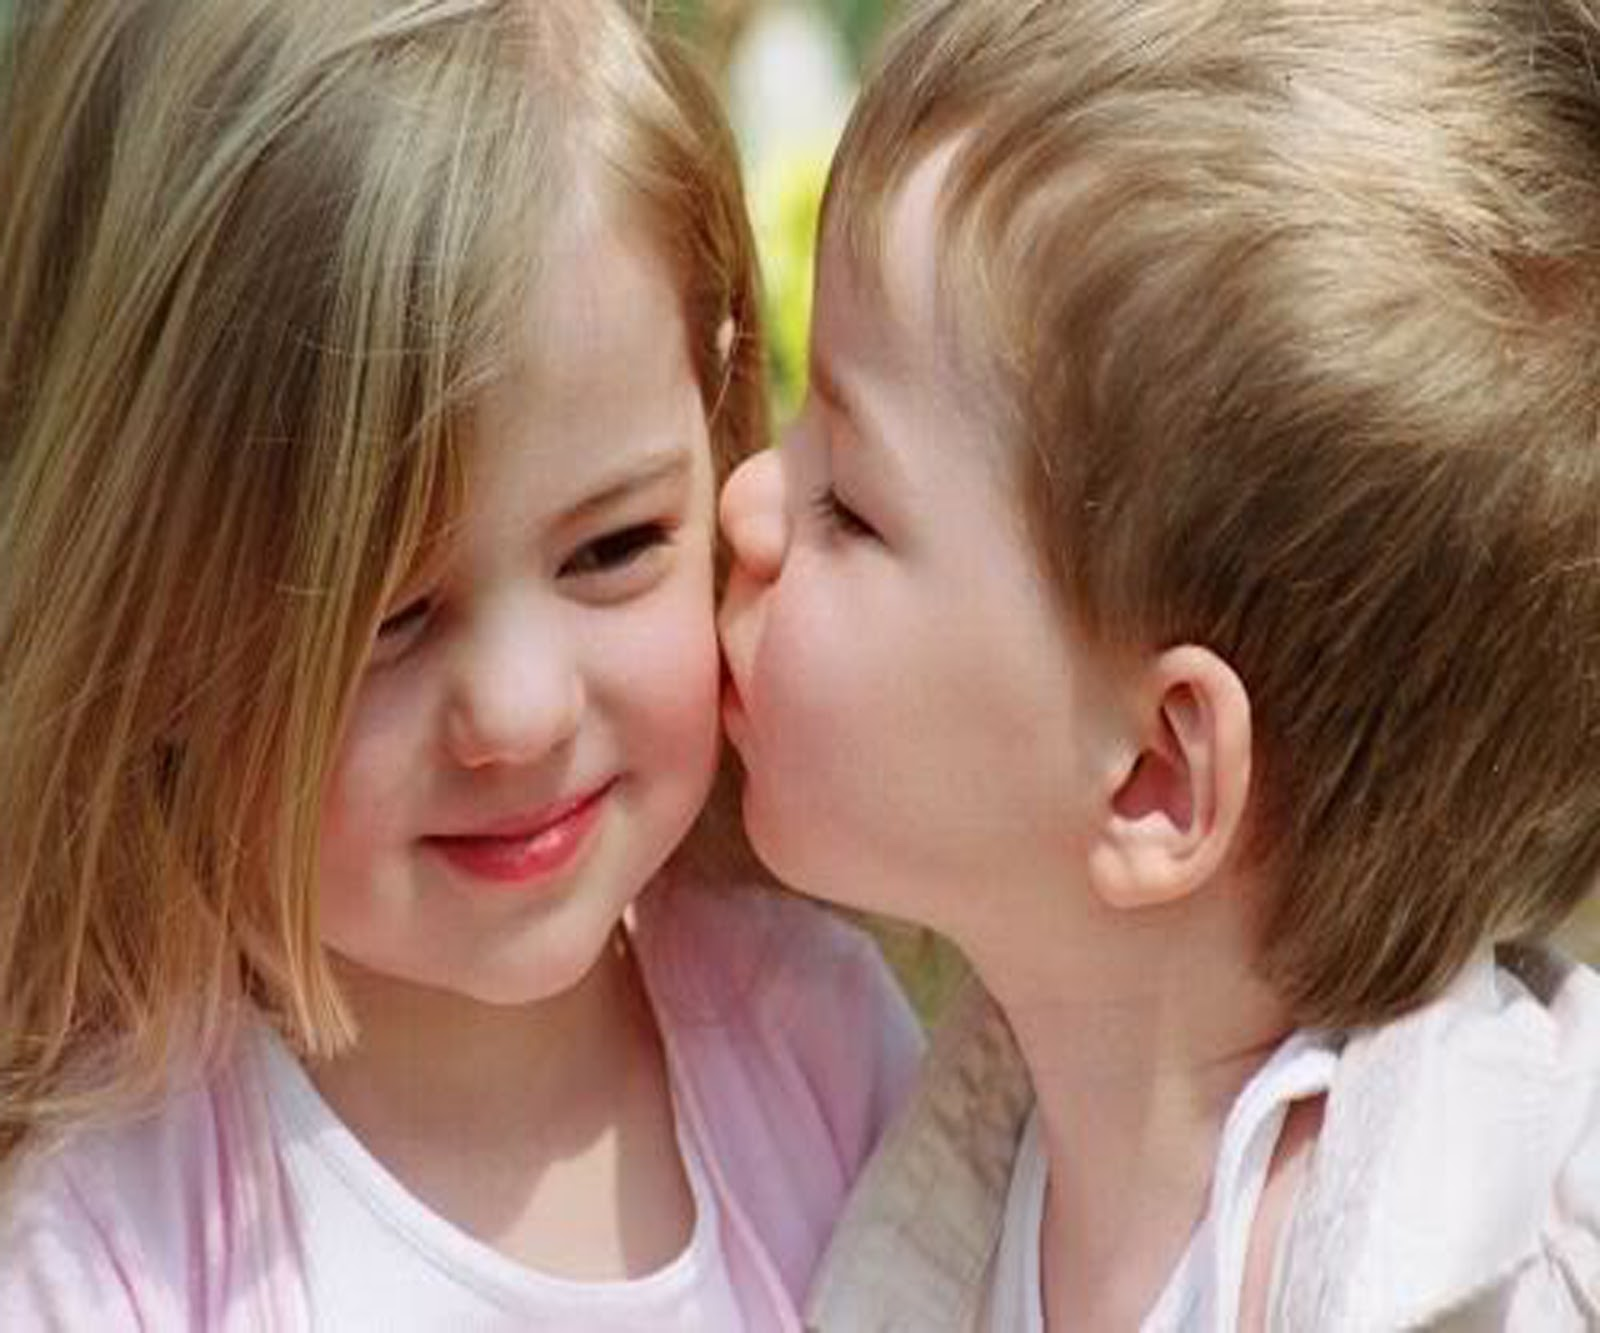 Cute Love Baby Couple Wallpapers For Mobile Posted By Ryan Sellers